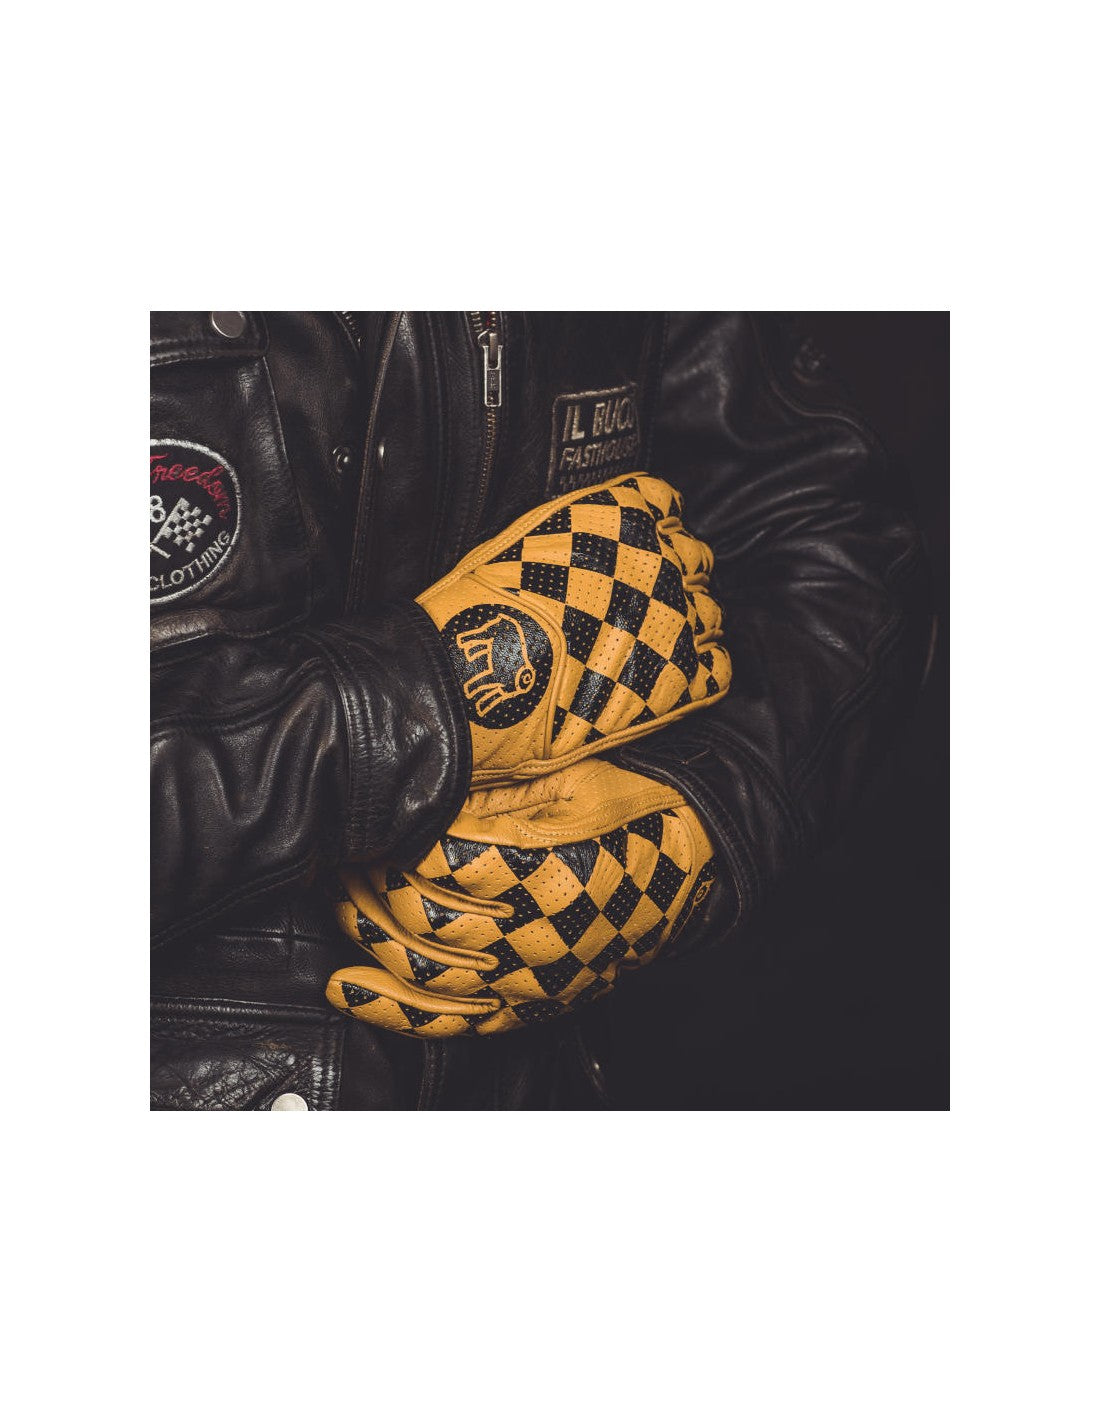 Rogue motorcycles, wa perth, worker gloves, motorbike gloves, yellow leather gloves, rider gloves, sport bike gloves, cafe racer gloves.